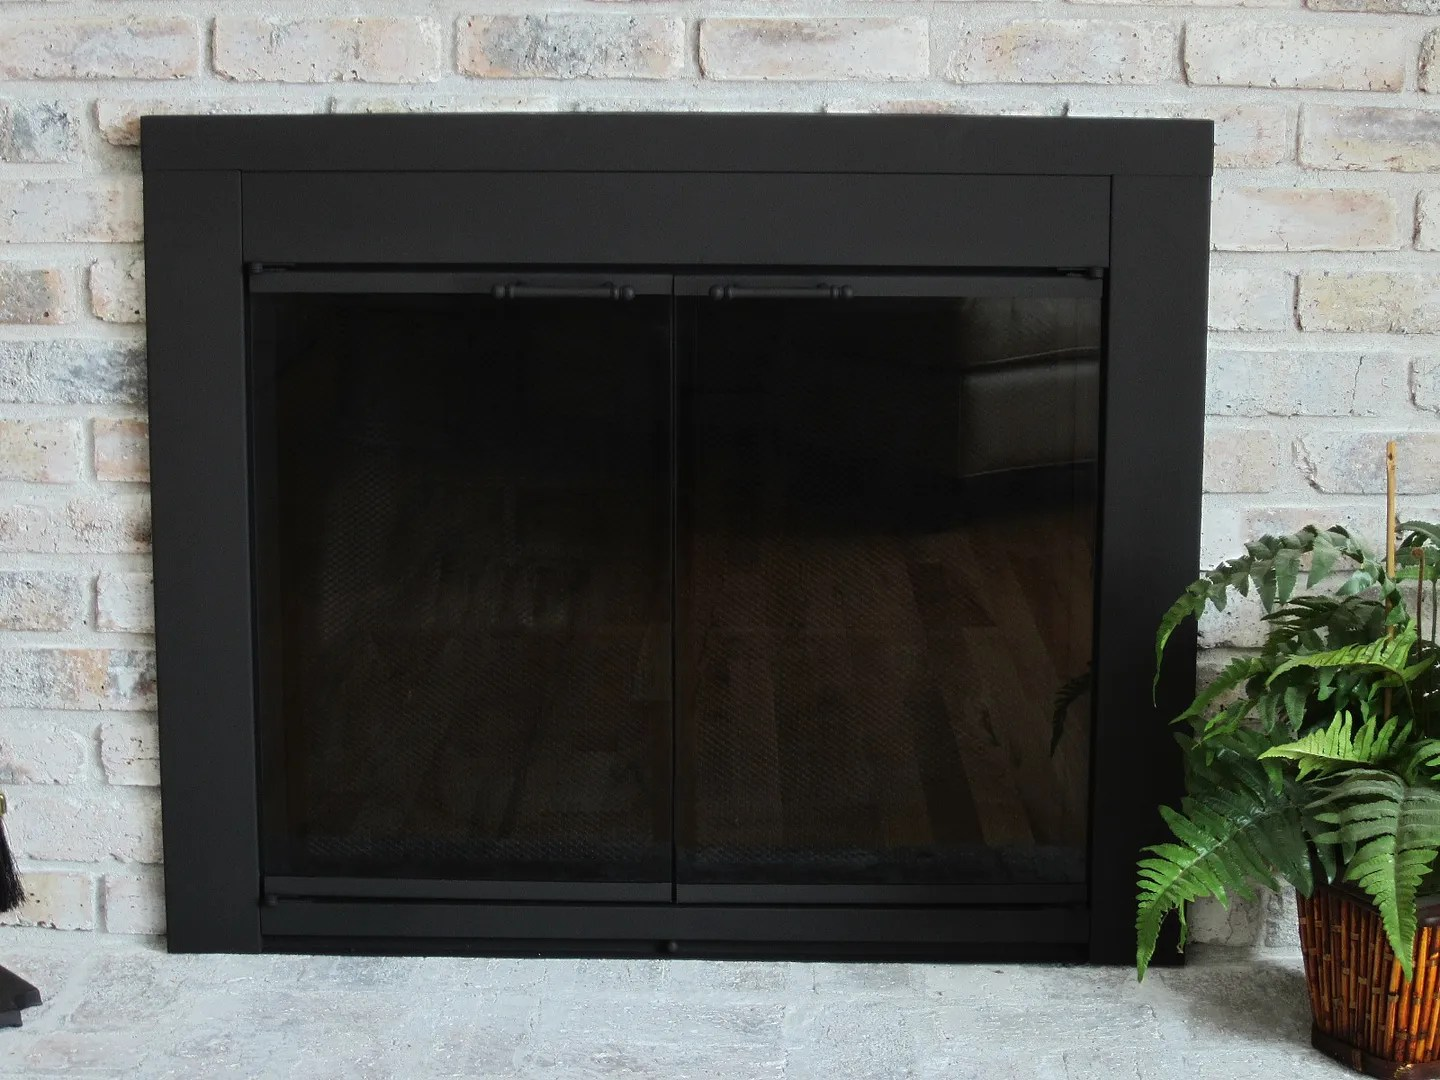 Spray painting a fireplace screen black | Home Staging In ...